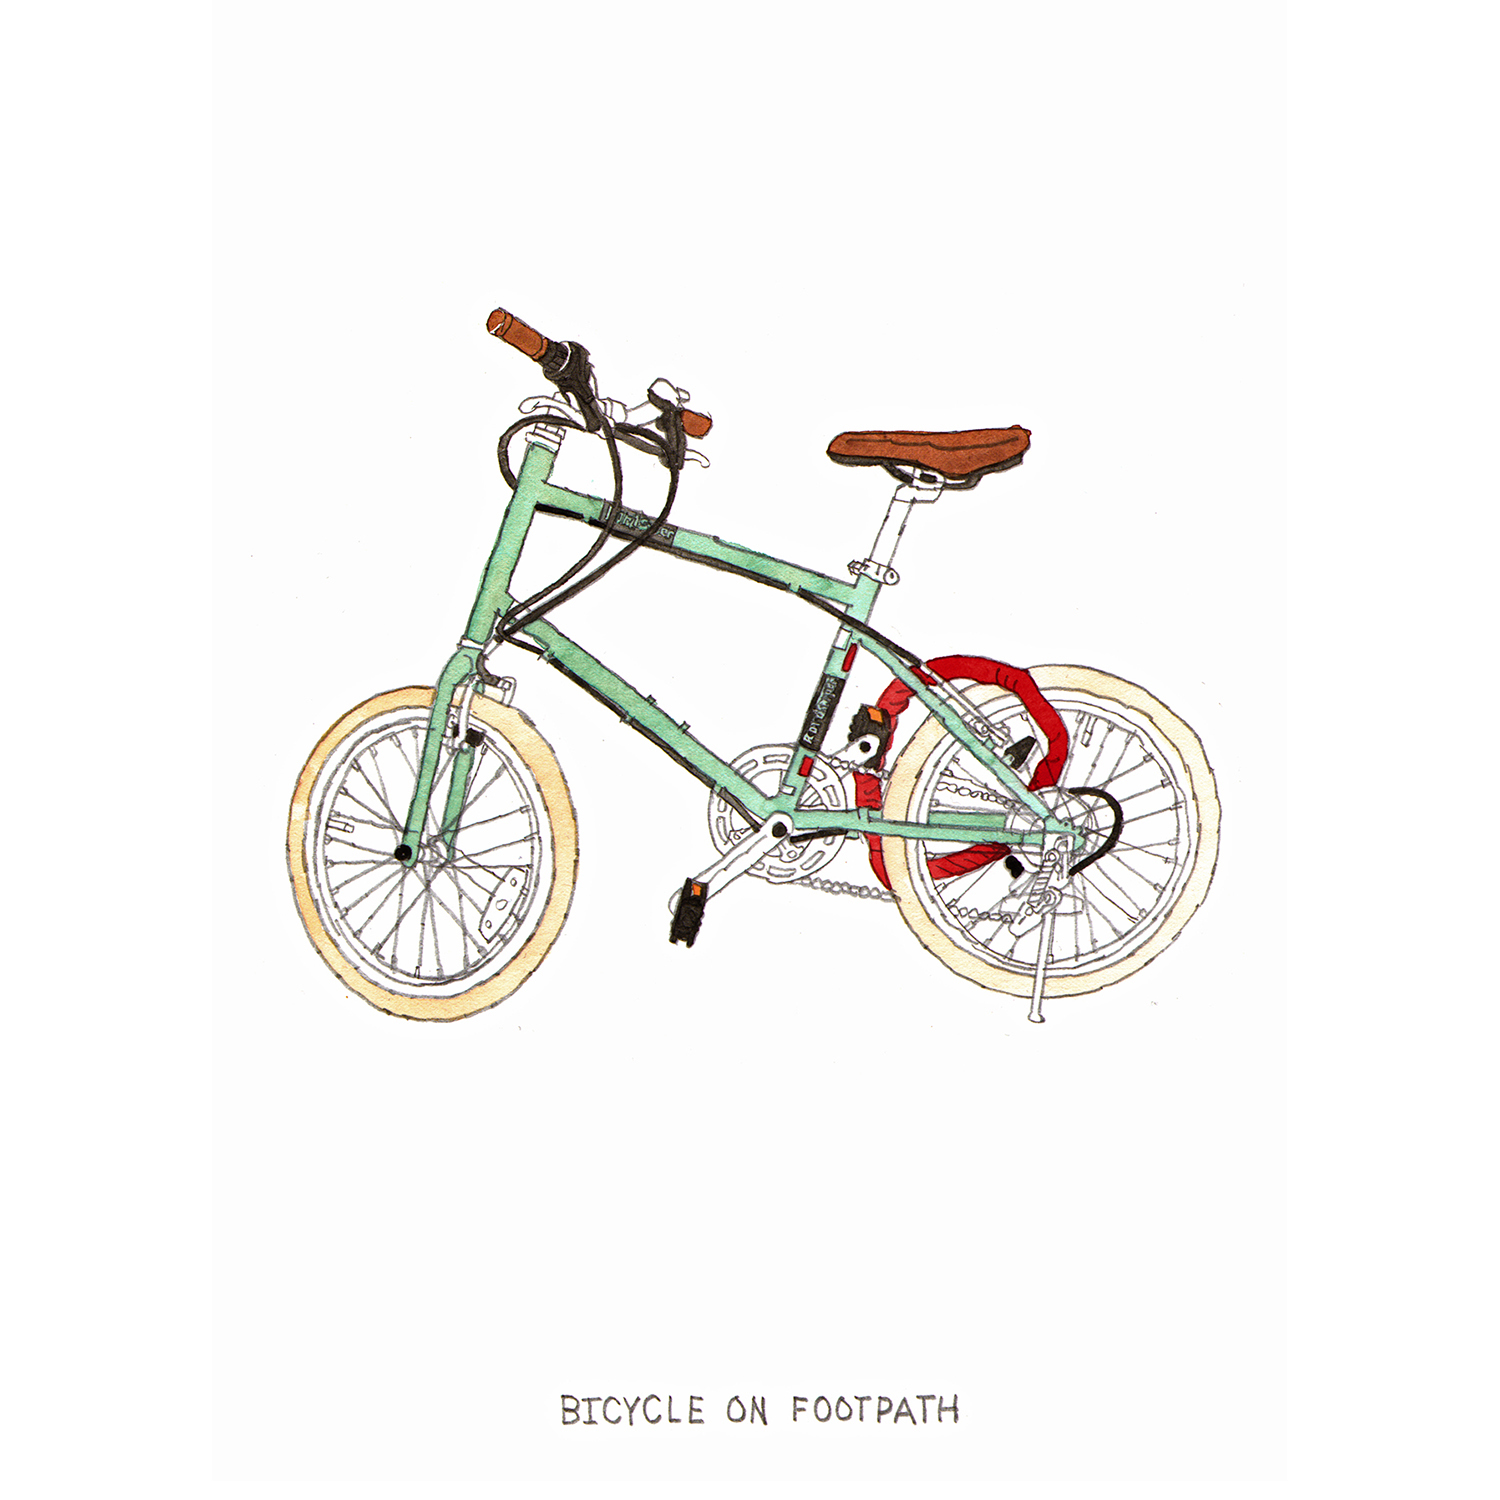 japanese bicycle bike illustration 4.jpg